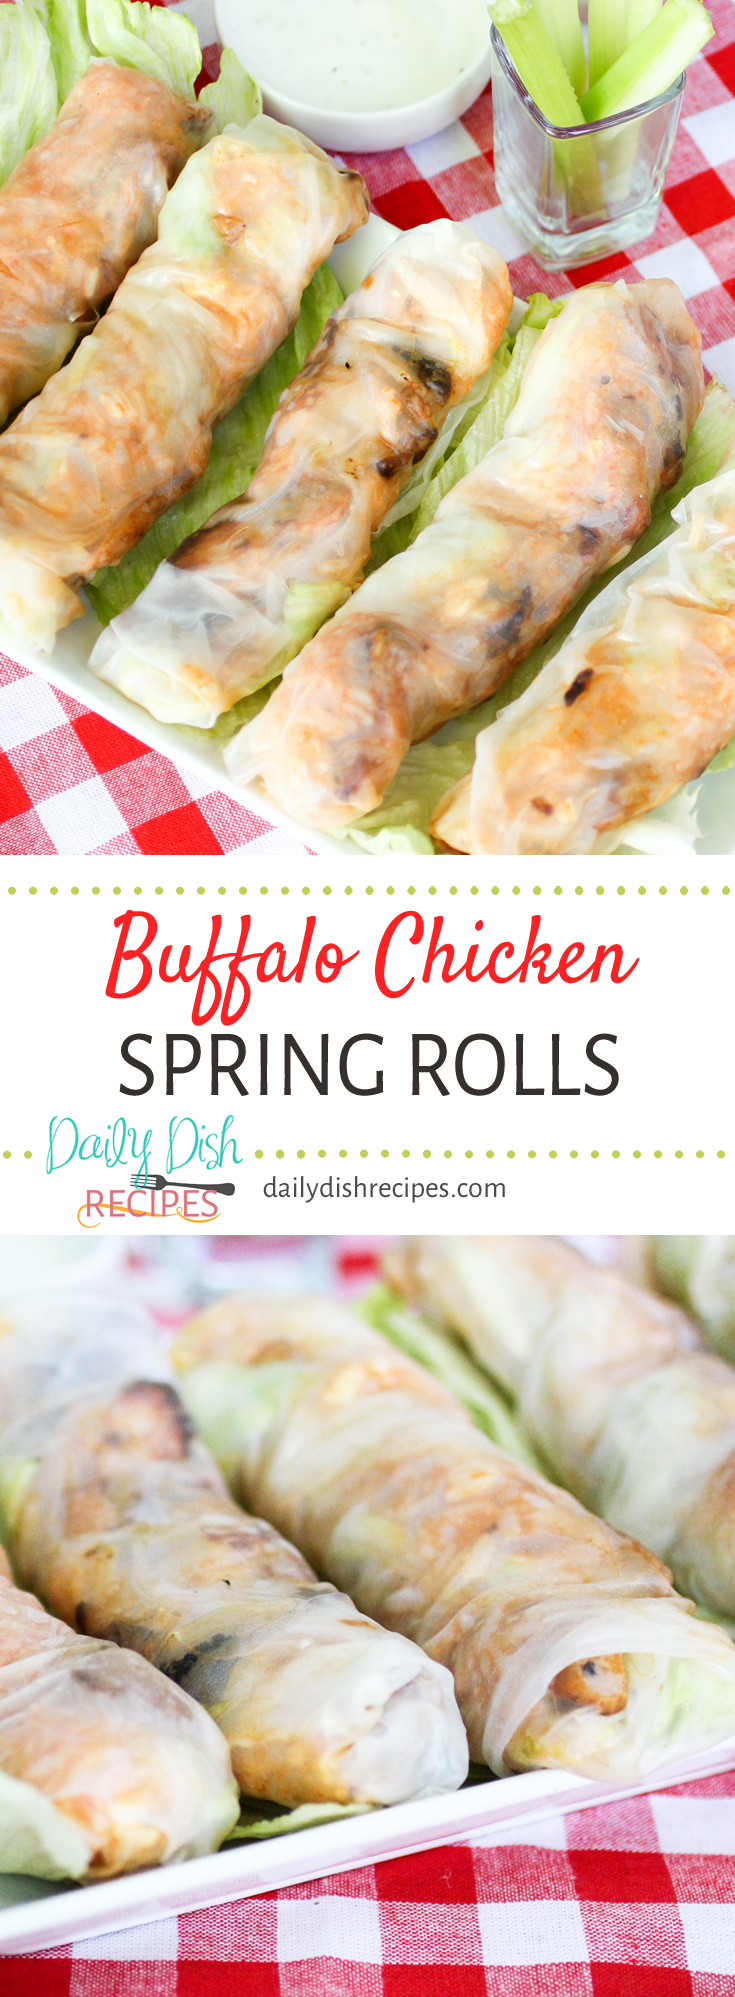 Who doesn't love Buffalo Chicken? Wrap it up in Spring Rolls and you get these incredible Buffalo Chicken Spring Rolls. A healthy, hearty lunch on it's own, but feel free to add a little ranch or blue cheese to cool it all off.